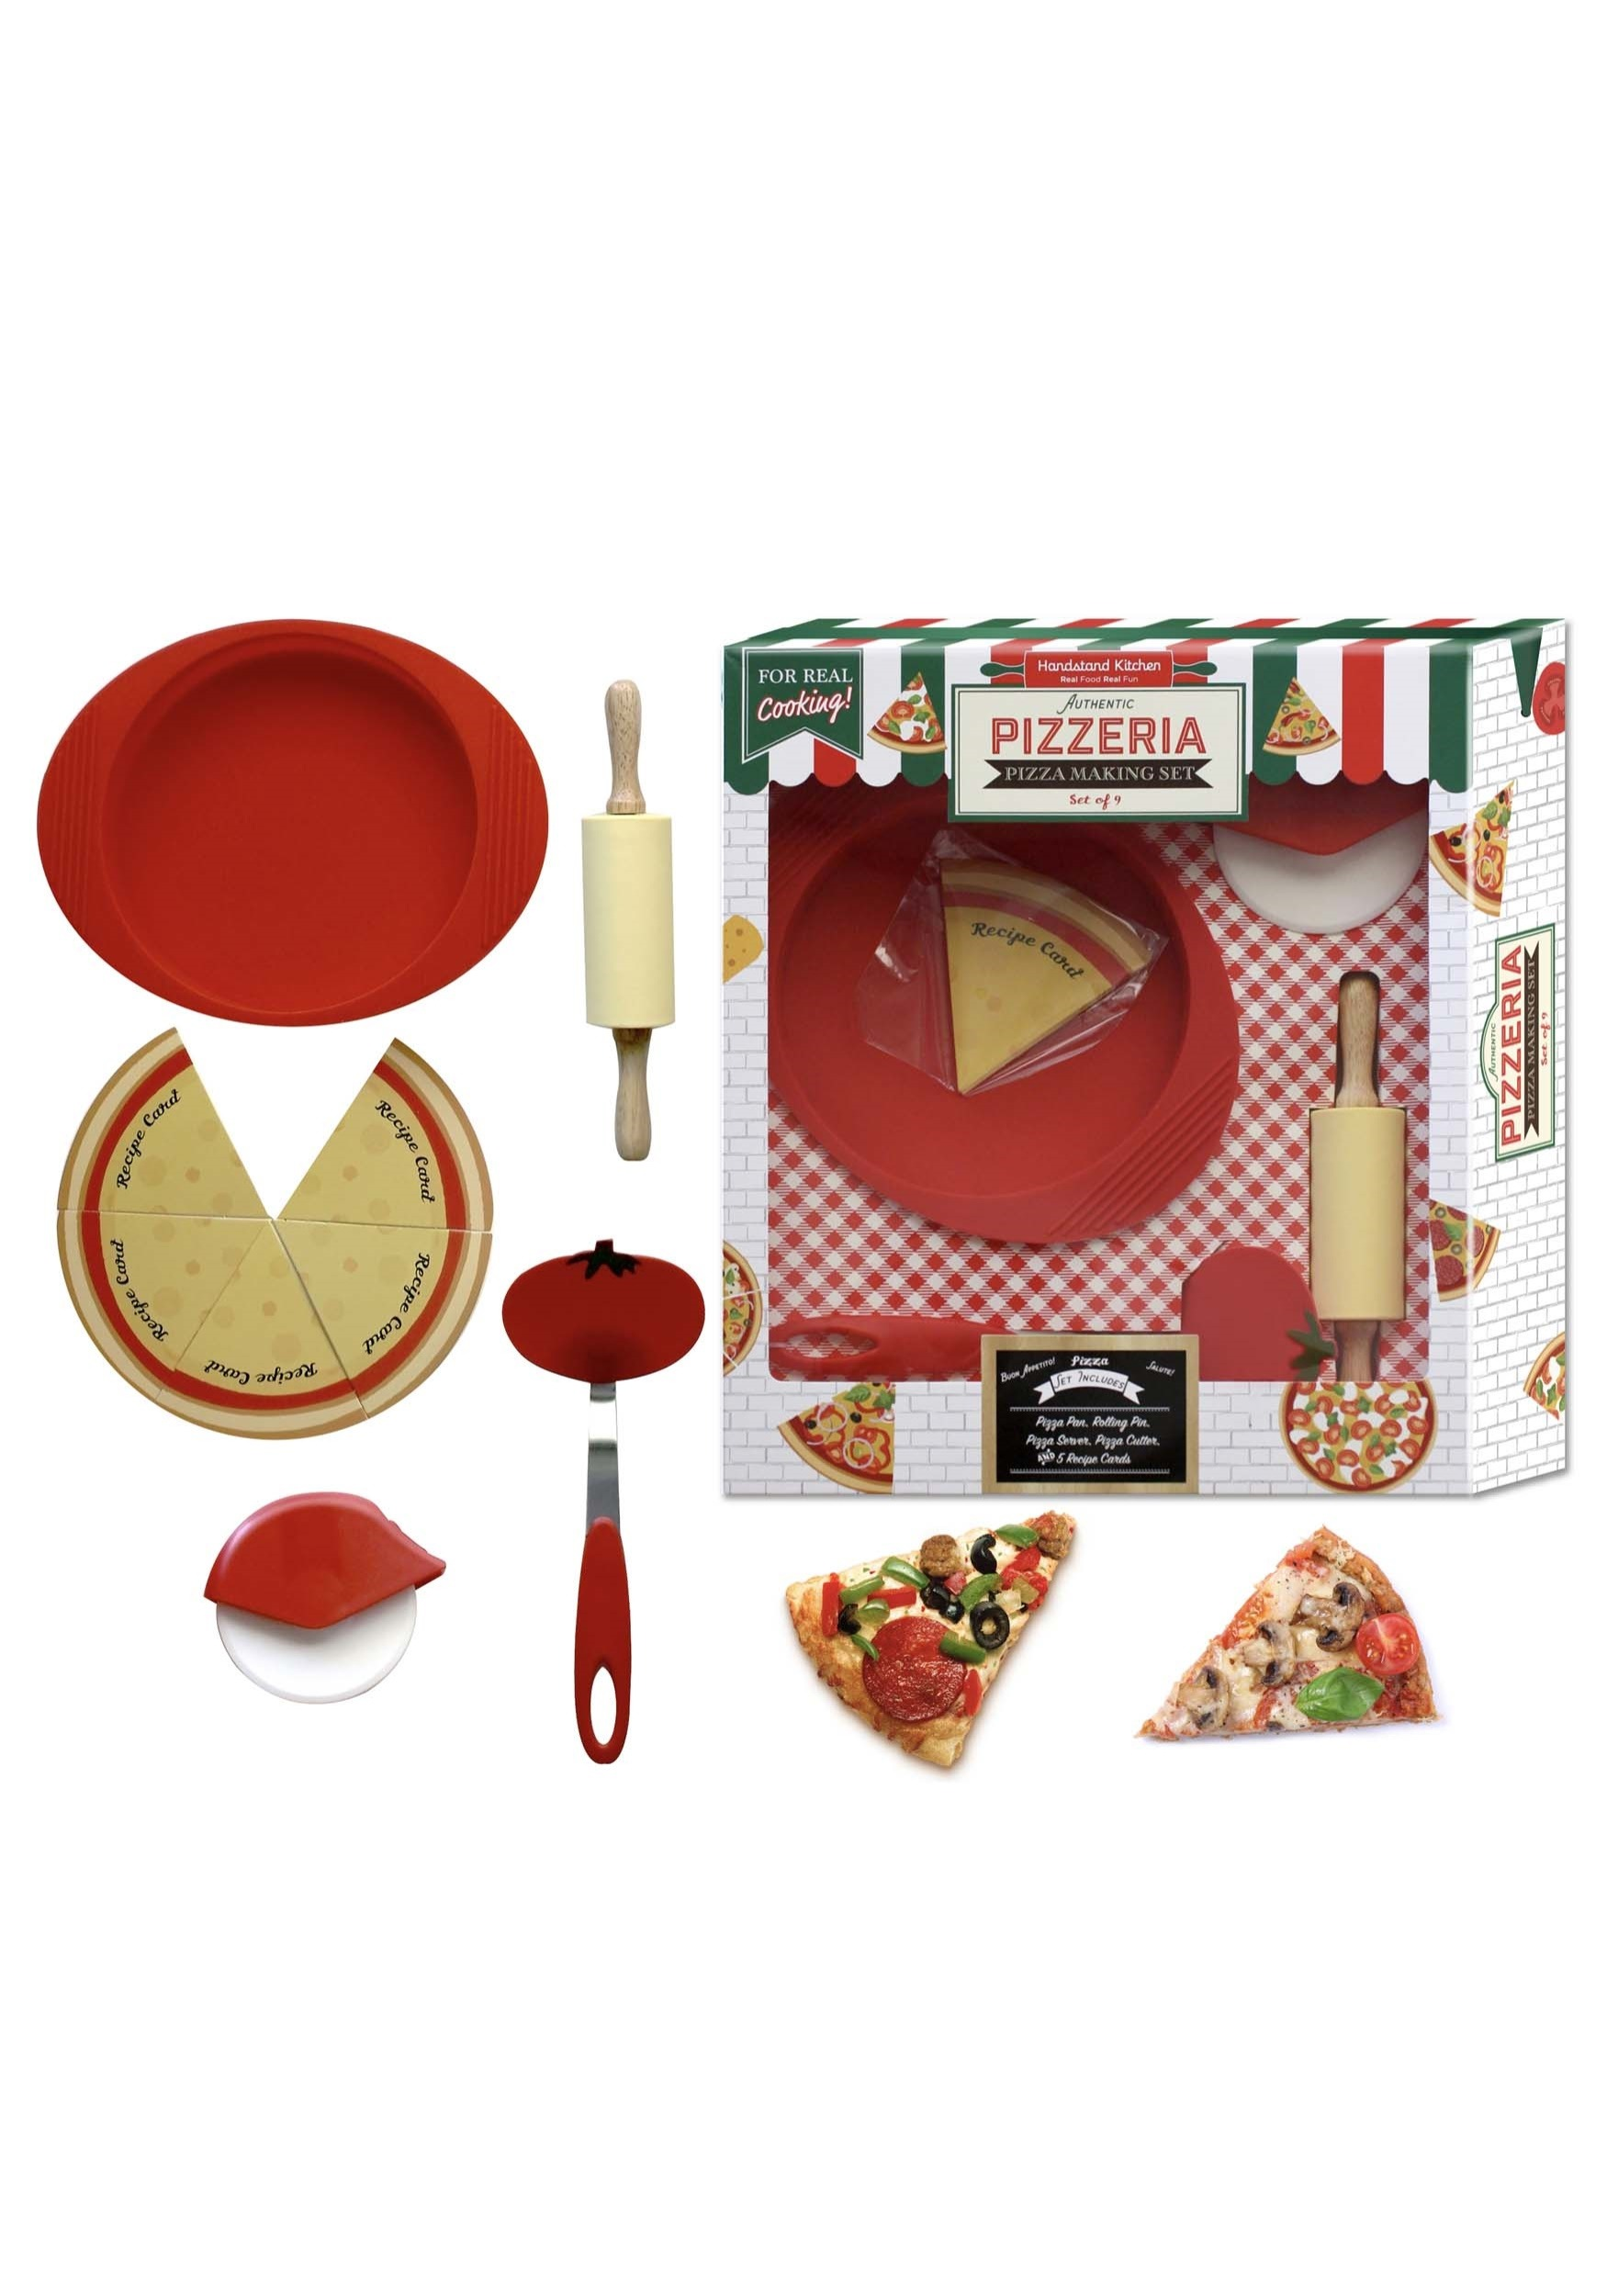 9 Piece Pizza Making Set For Kids